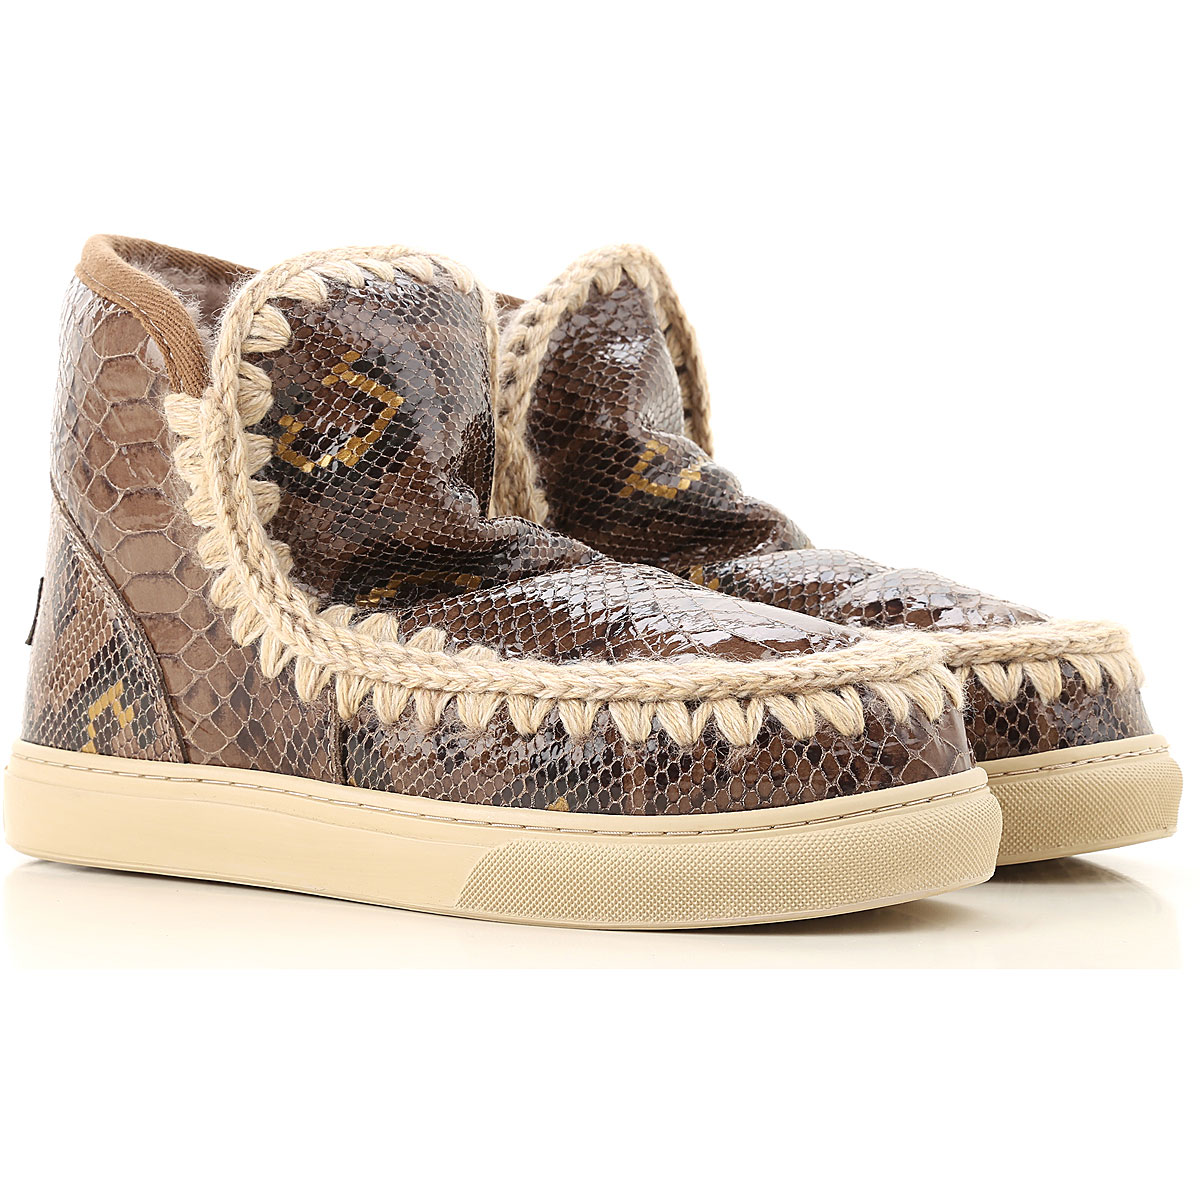 Mou Boots for Women, Booties On Sale, Elephant Grey, Leather, 2019, EUR 37 - UK 4 - USA 6.5 EUR 40 - UK 7 - USA 9.5